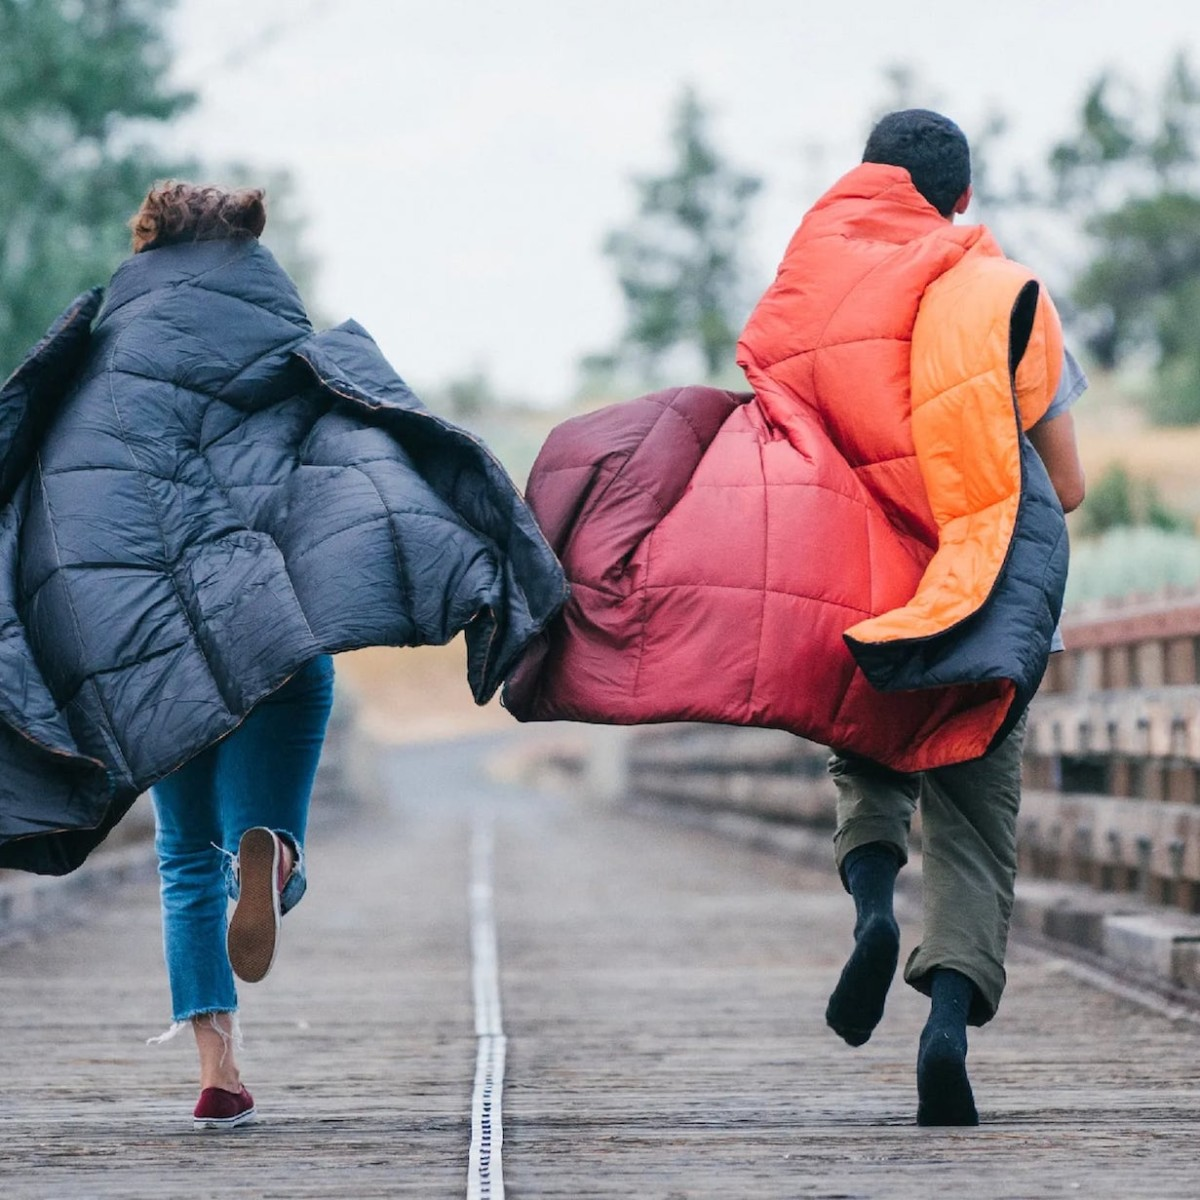 Rumpl NanoLoft Puffy Synthetic Insulated Blanket is a cruelty-free alternative to down